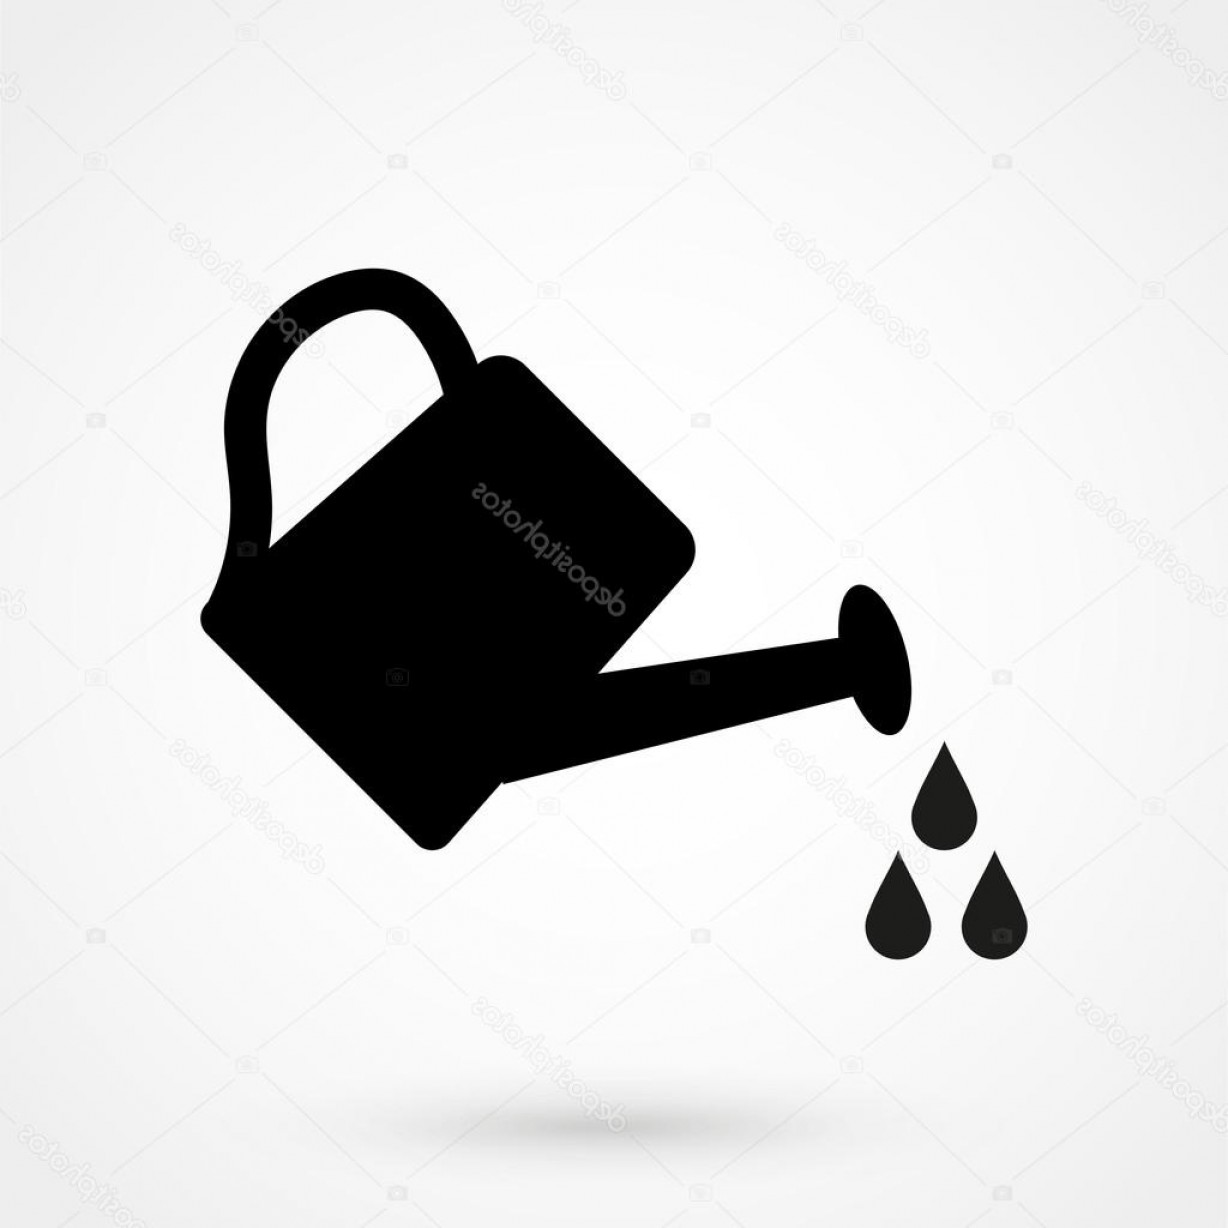 1228x1228 Stock Illustration Watering Can Icon Black Vector Shopatcloth